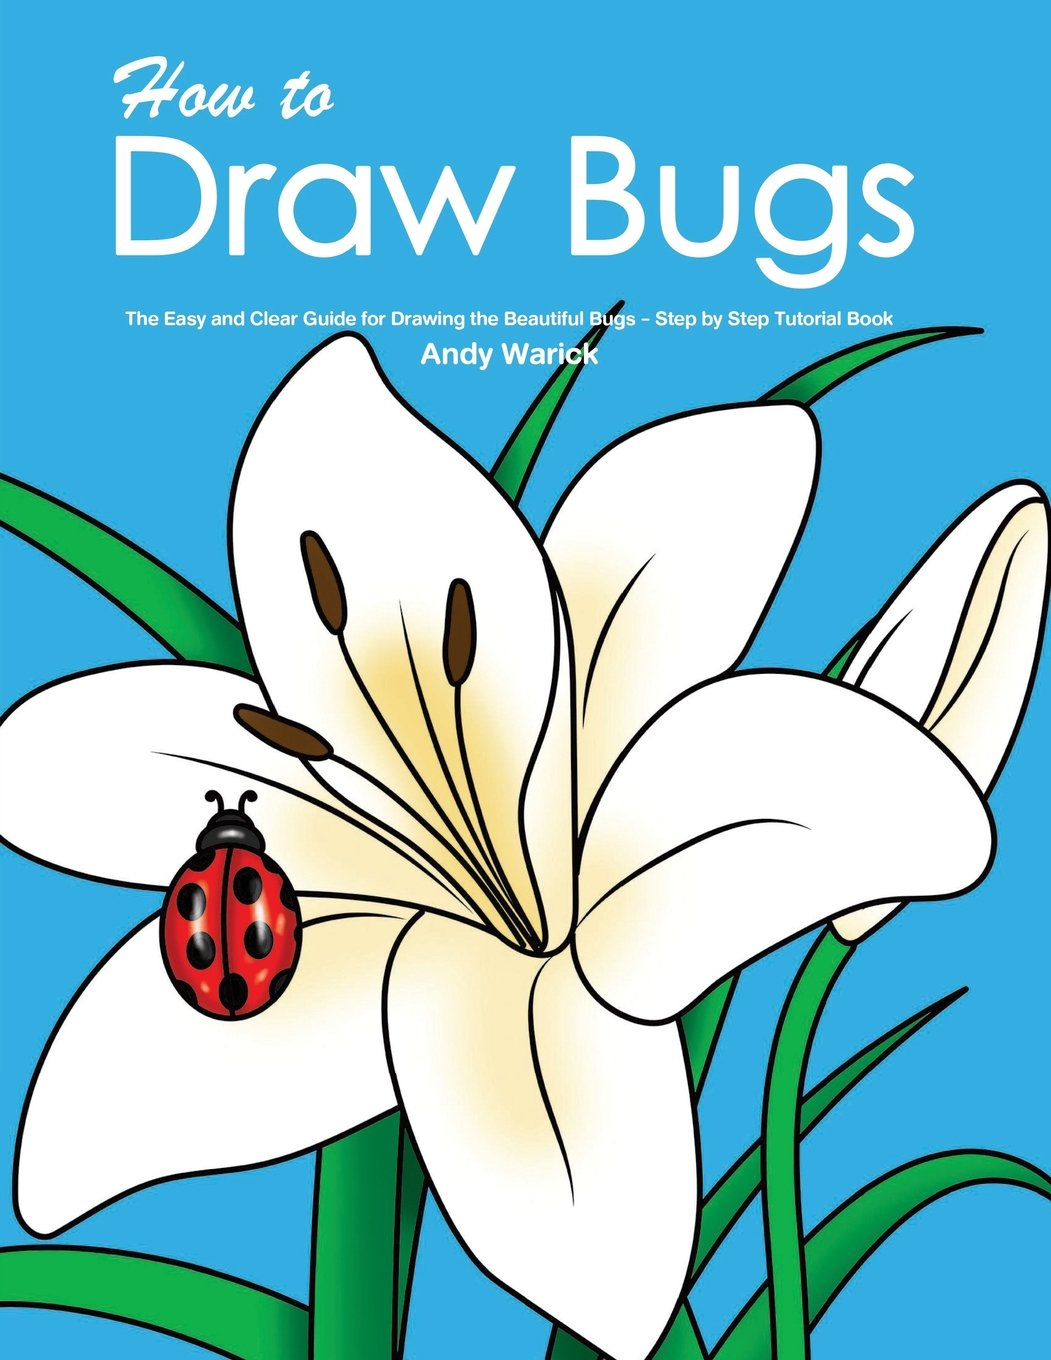 How To Draw Bugs The Easy And Clear Guide For Drawing The Beautiful